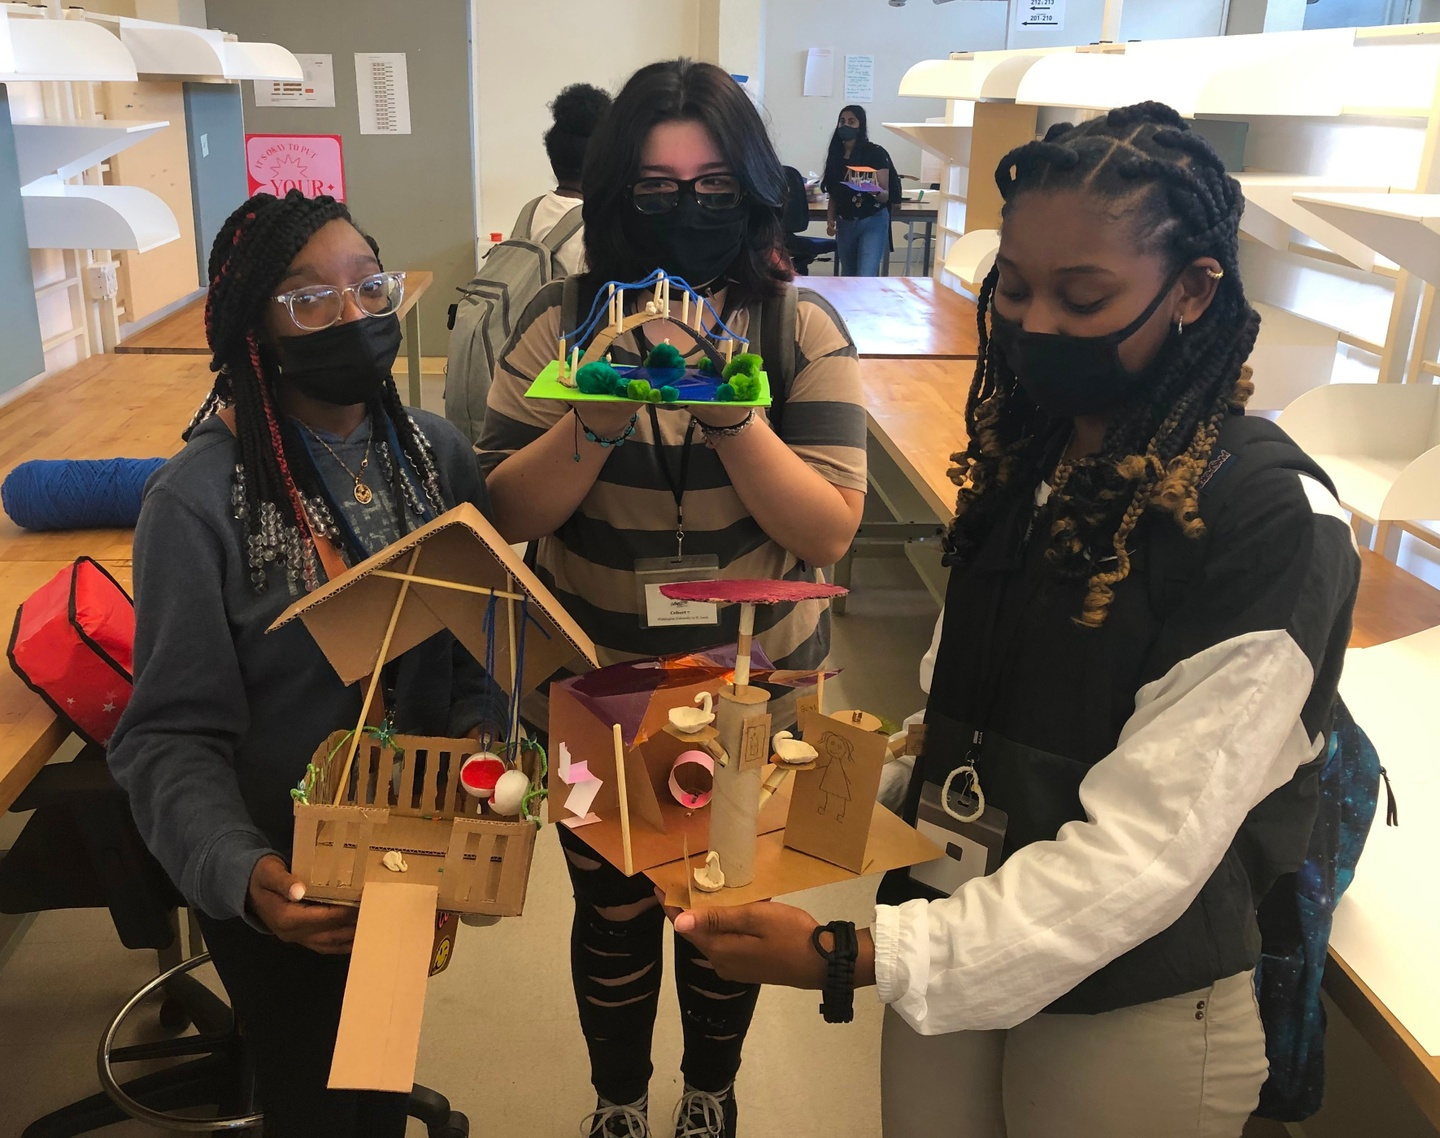 A group of three people wearing masks stands between desks, holding models made of wood and paper.